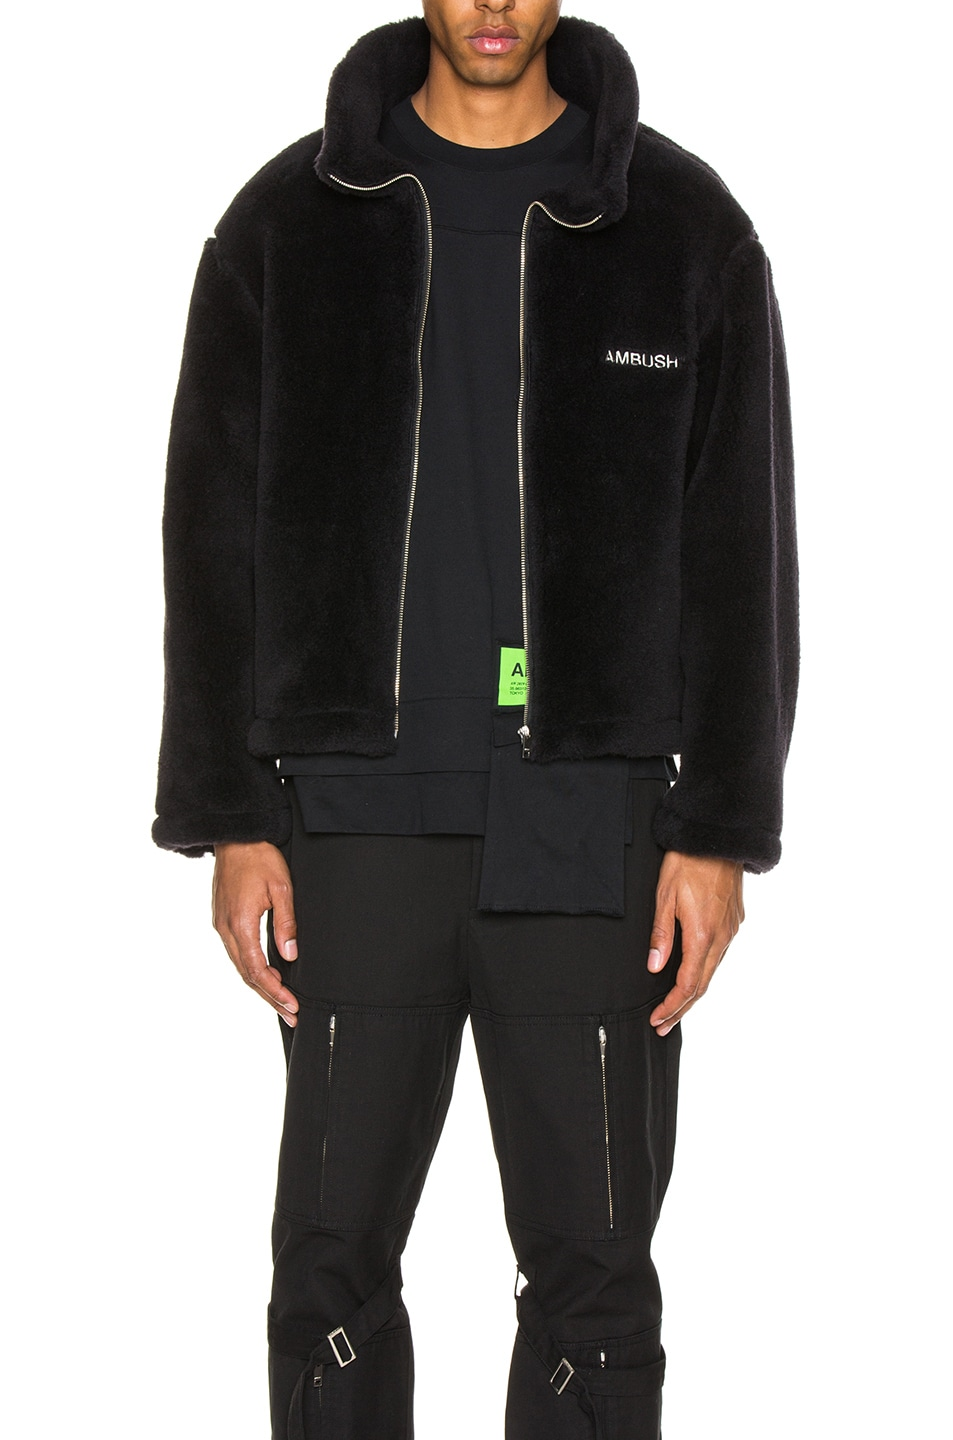 Image 1 of Ambush Fleece Jacket in Black